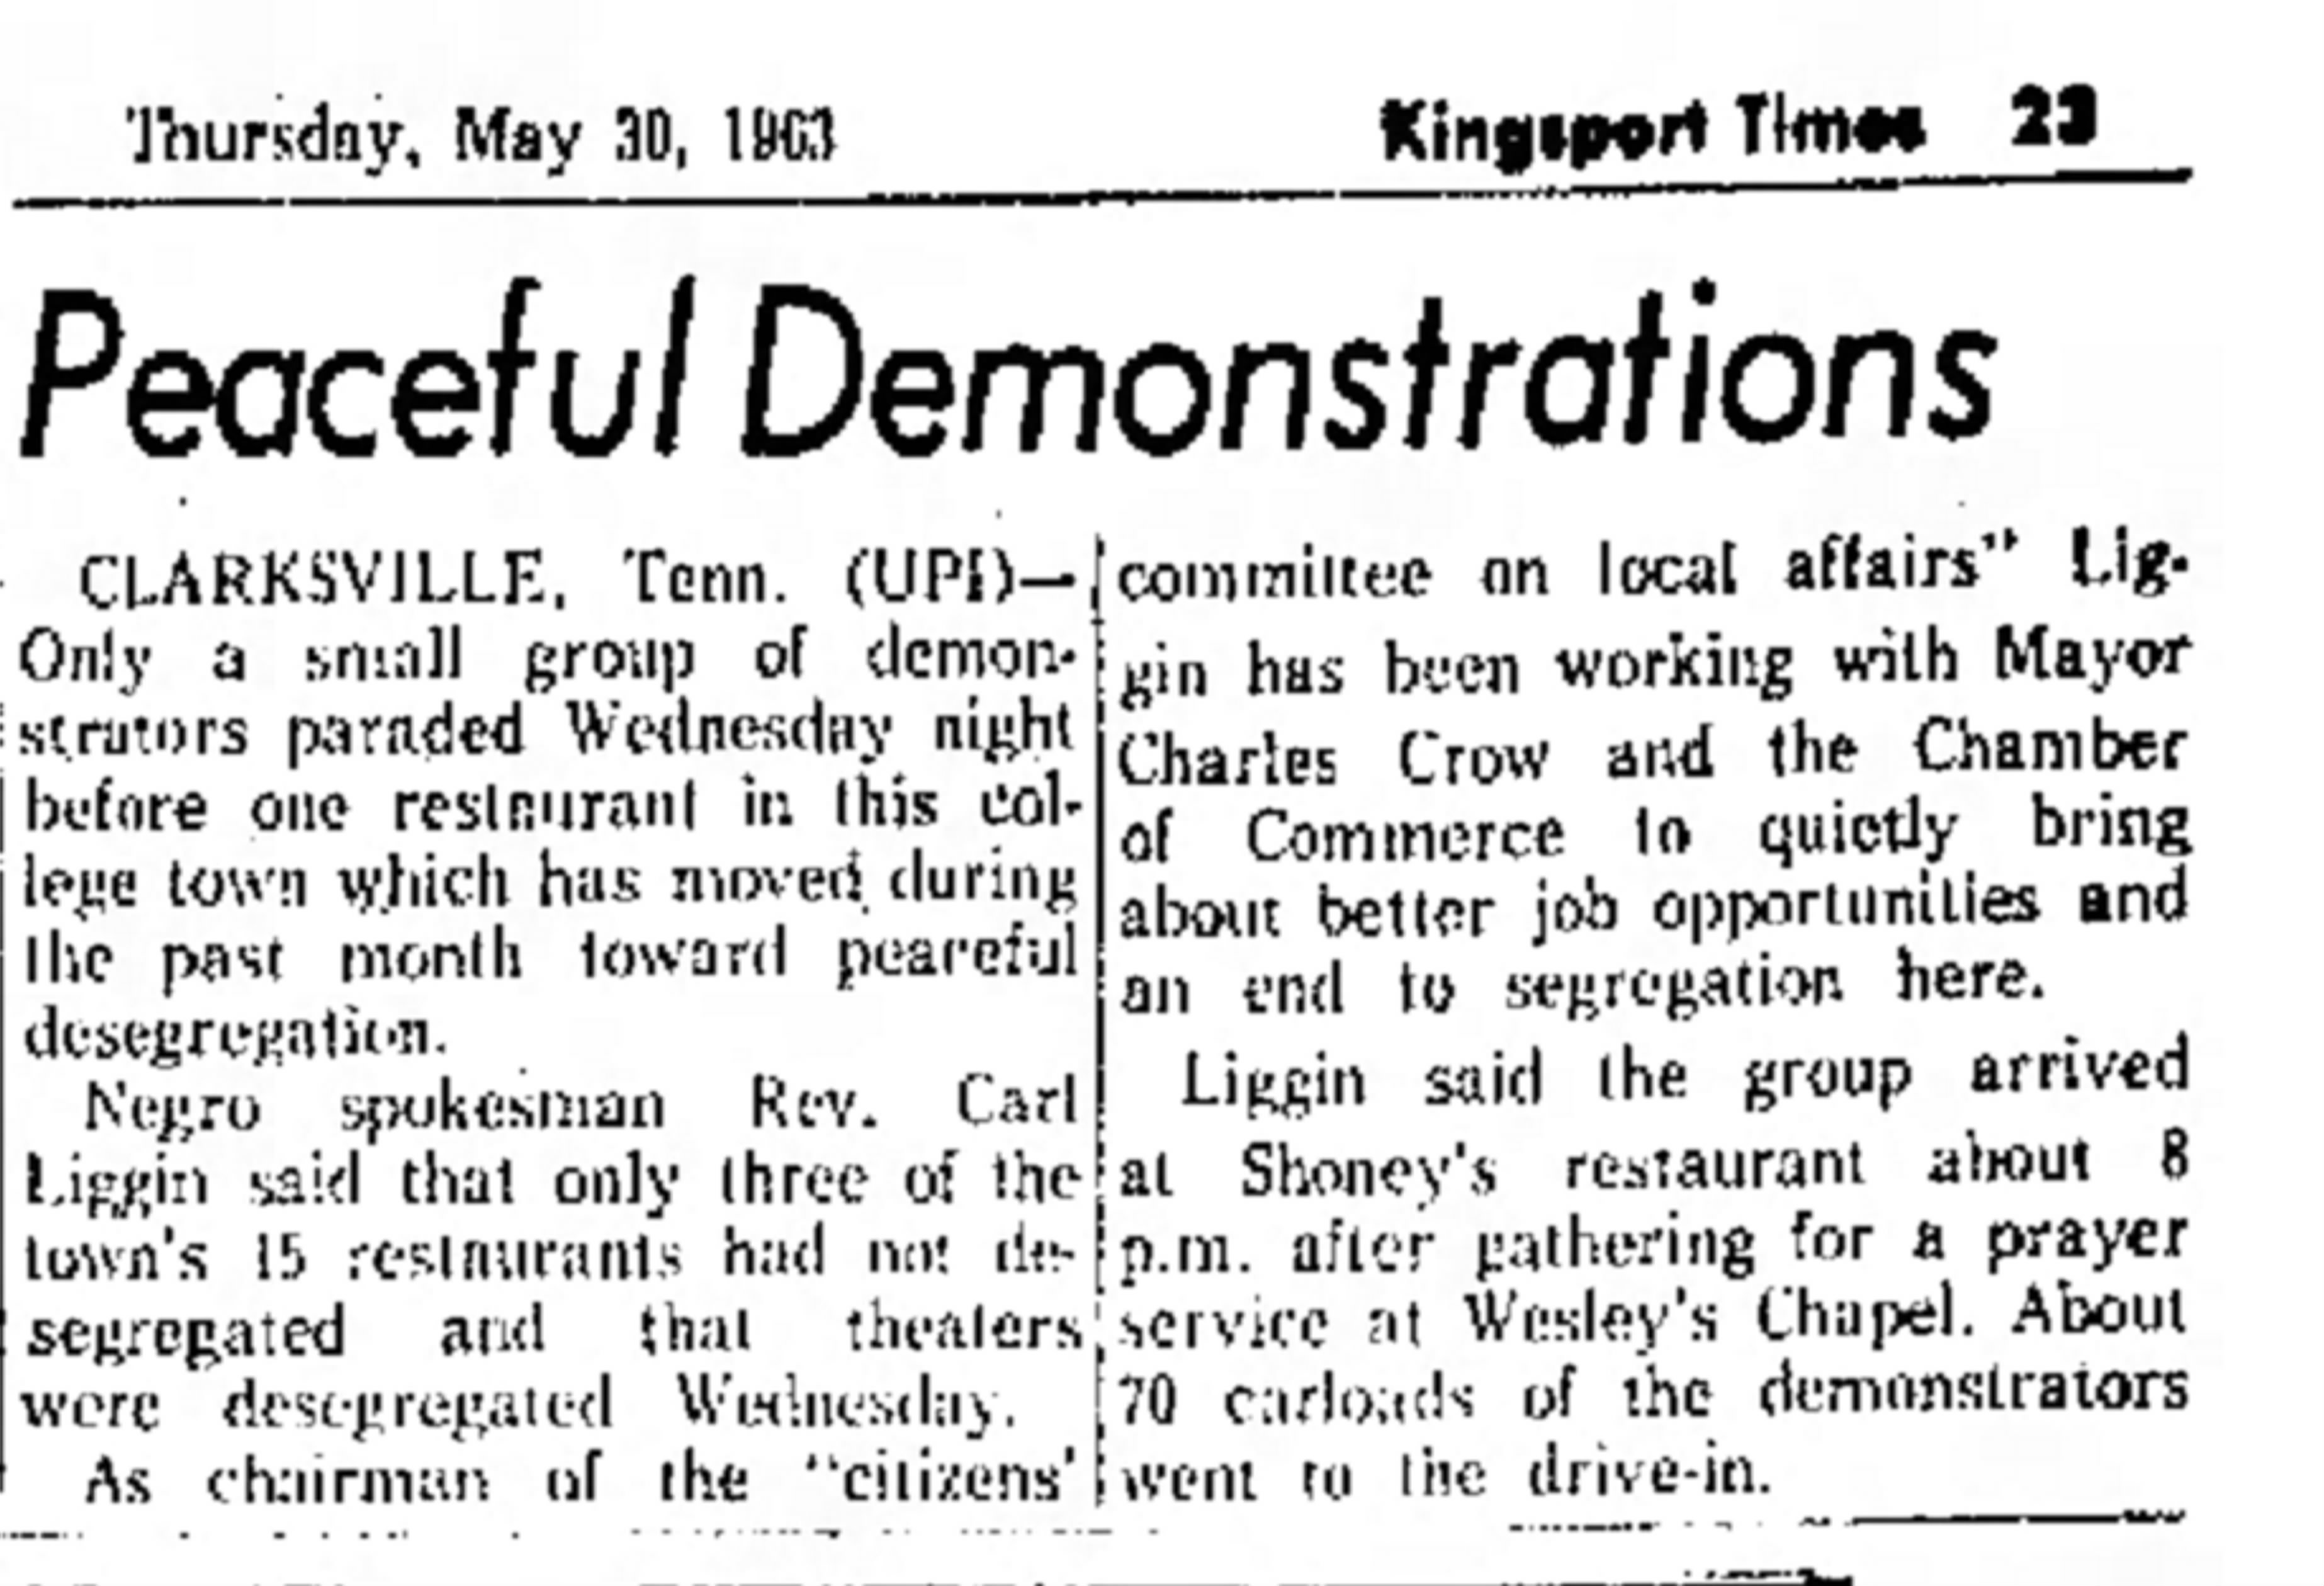 Kingsport Times (Kingsport Tennessee), May 30, 1963